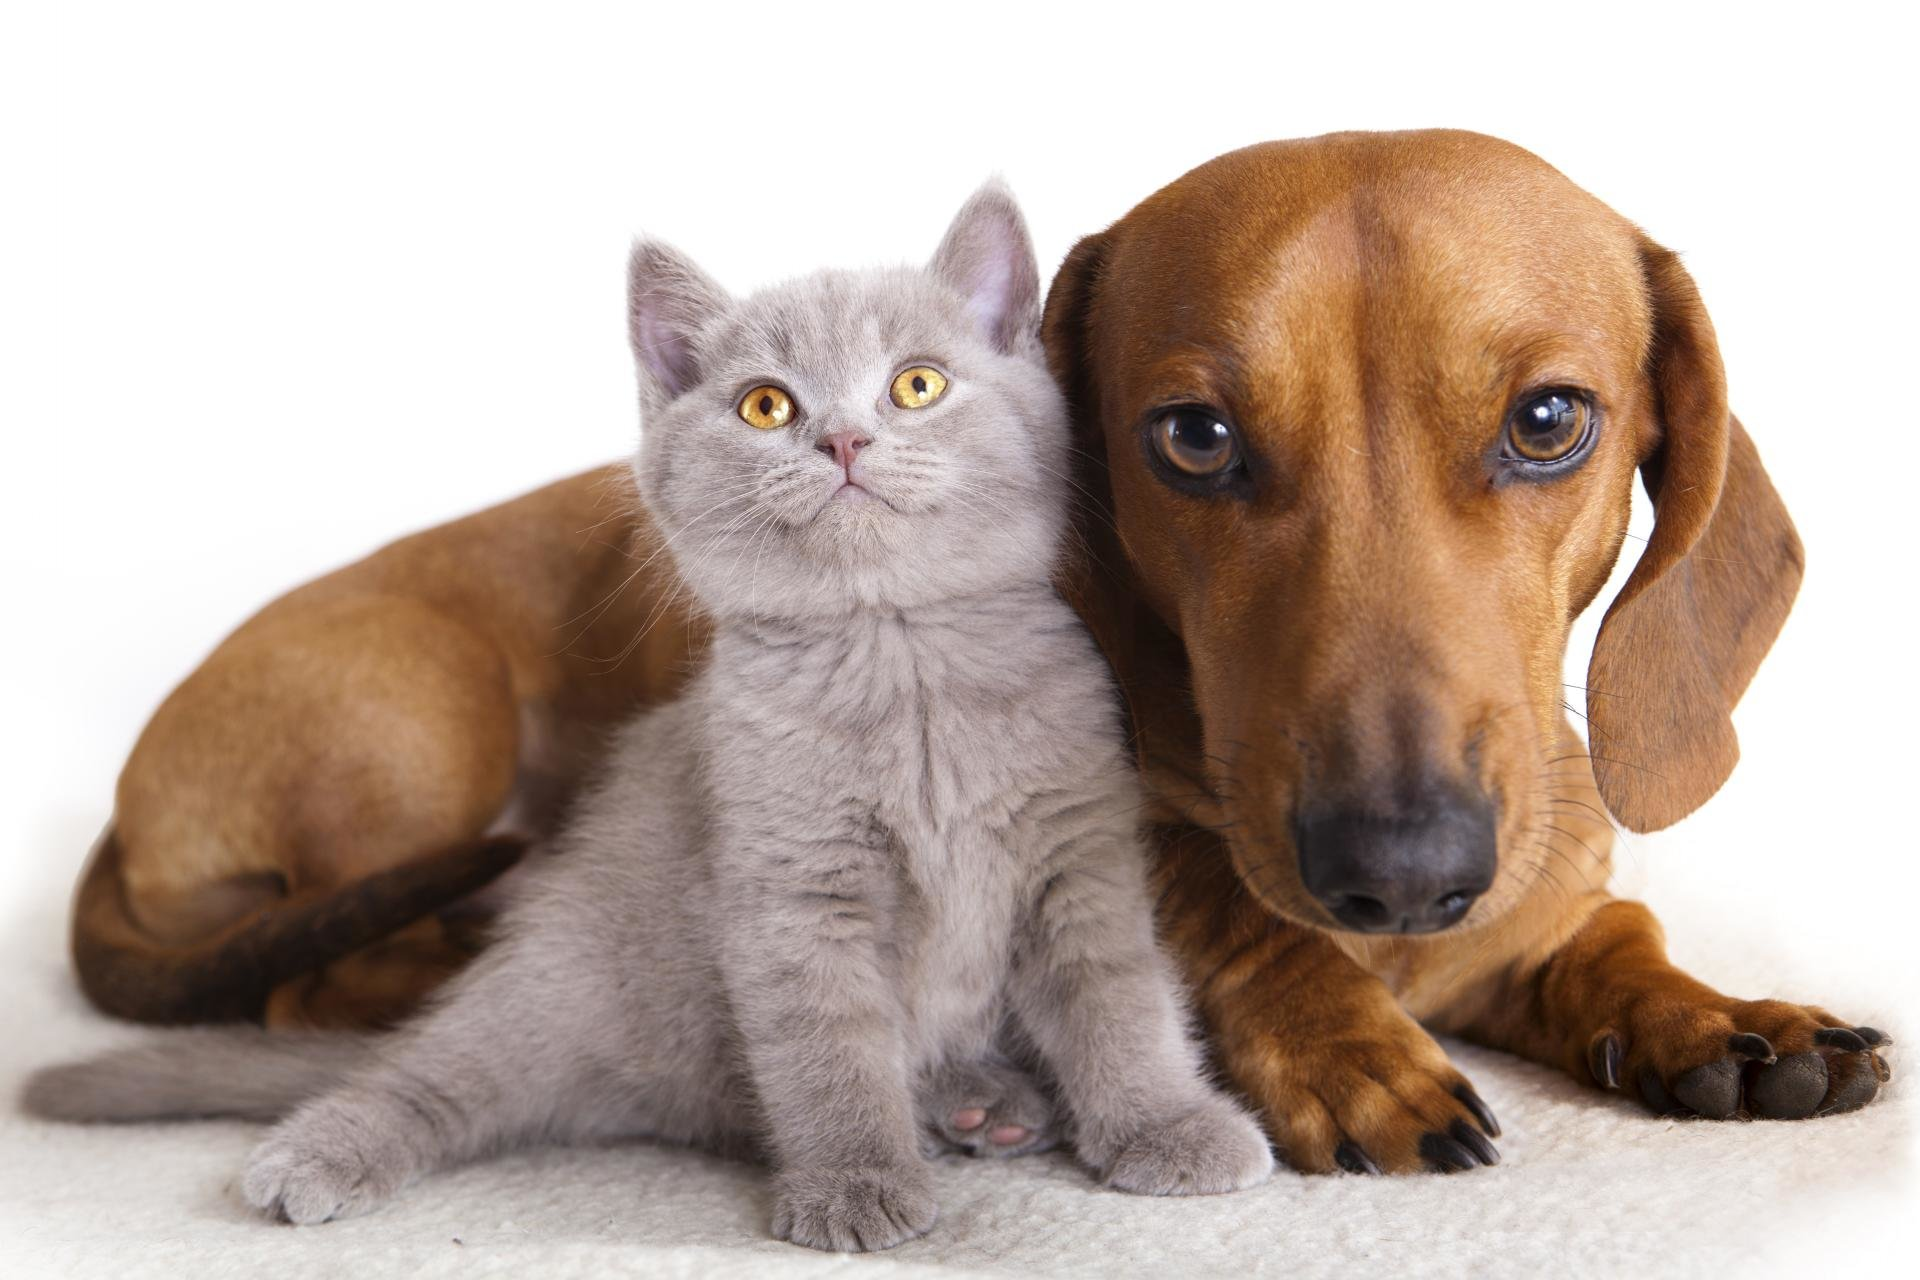 Free Cat and Dog high quality wallpaper ID:125335 for hd 1920x1280 PC